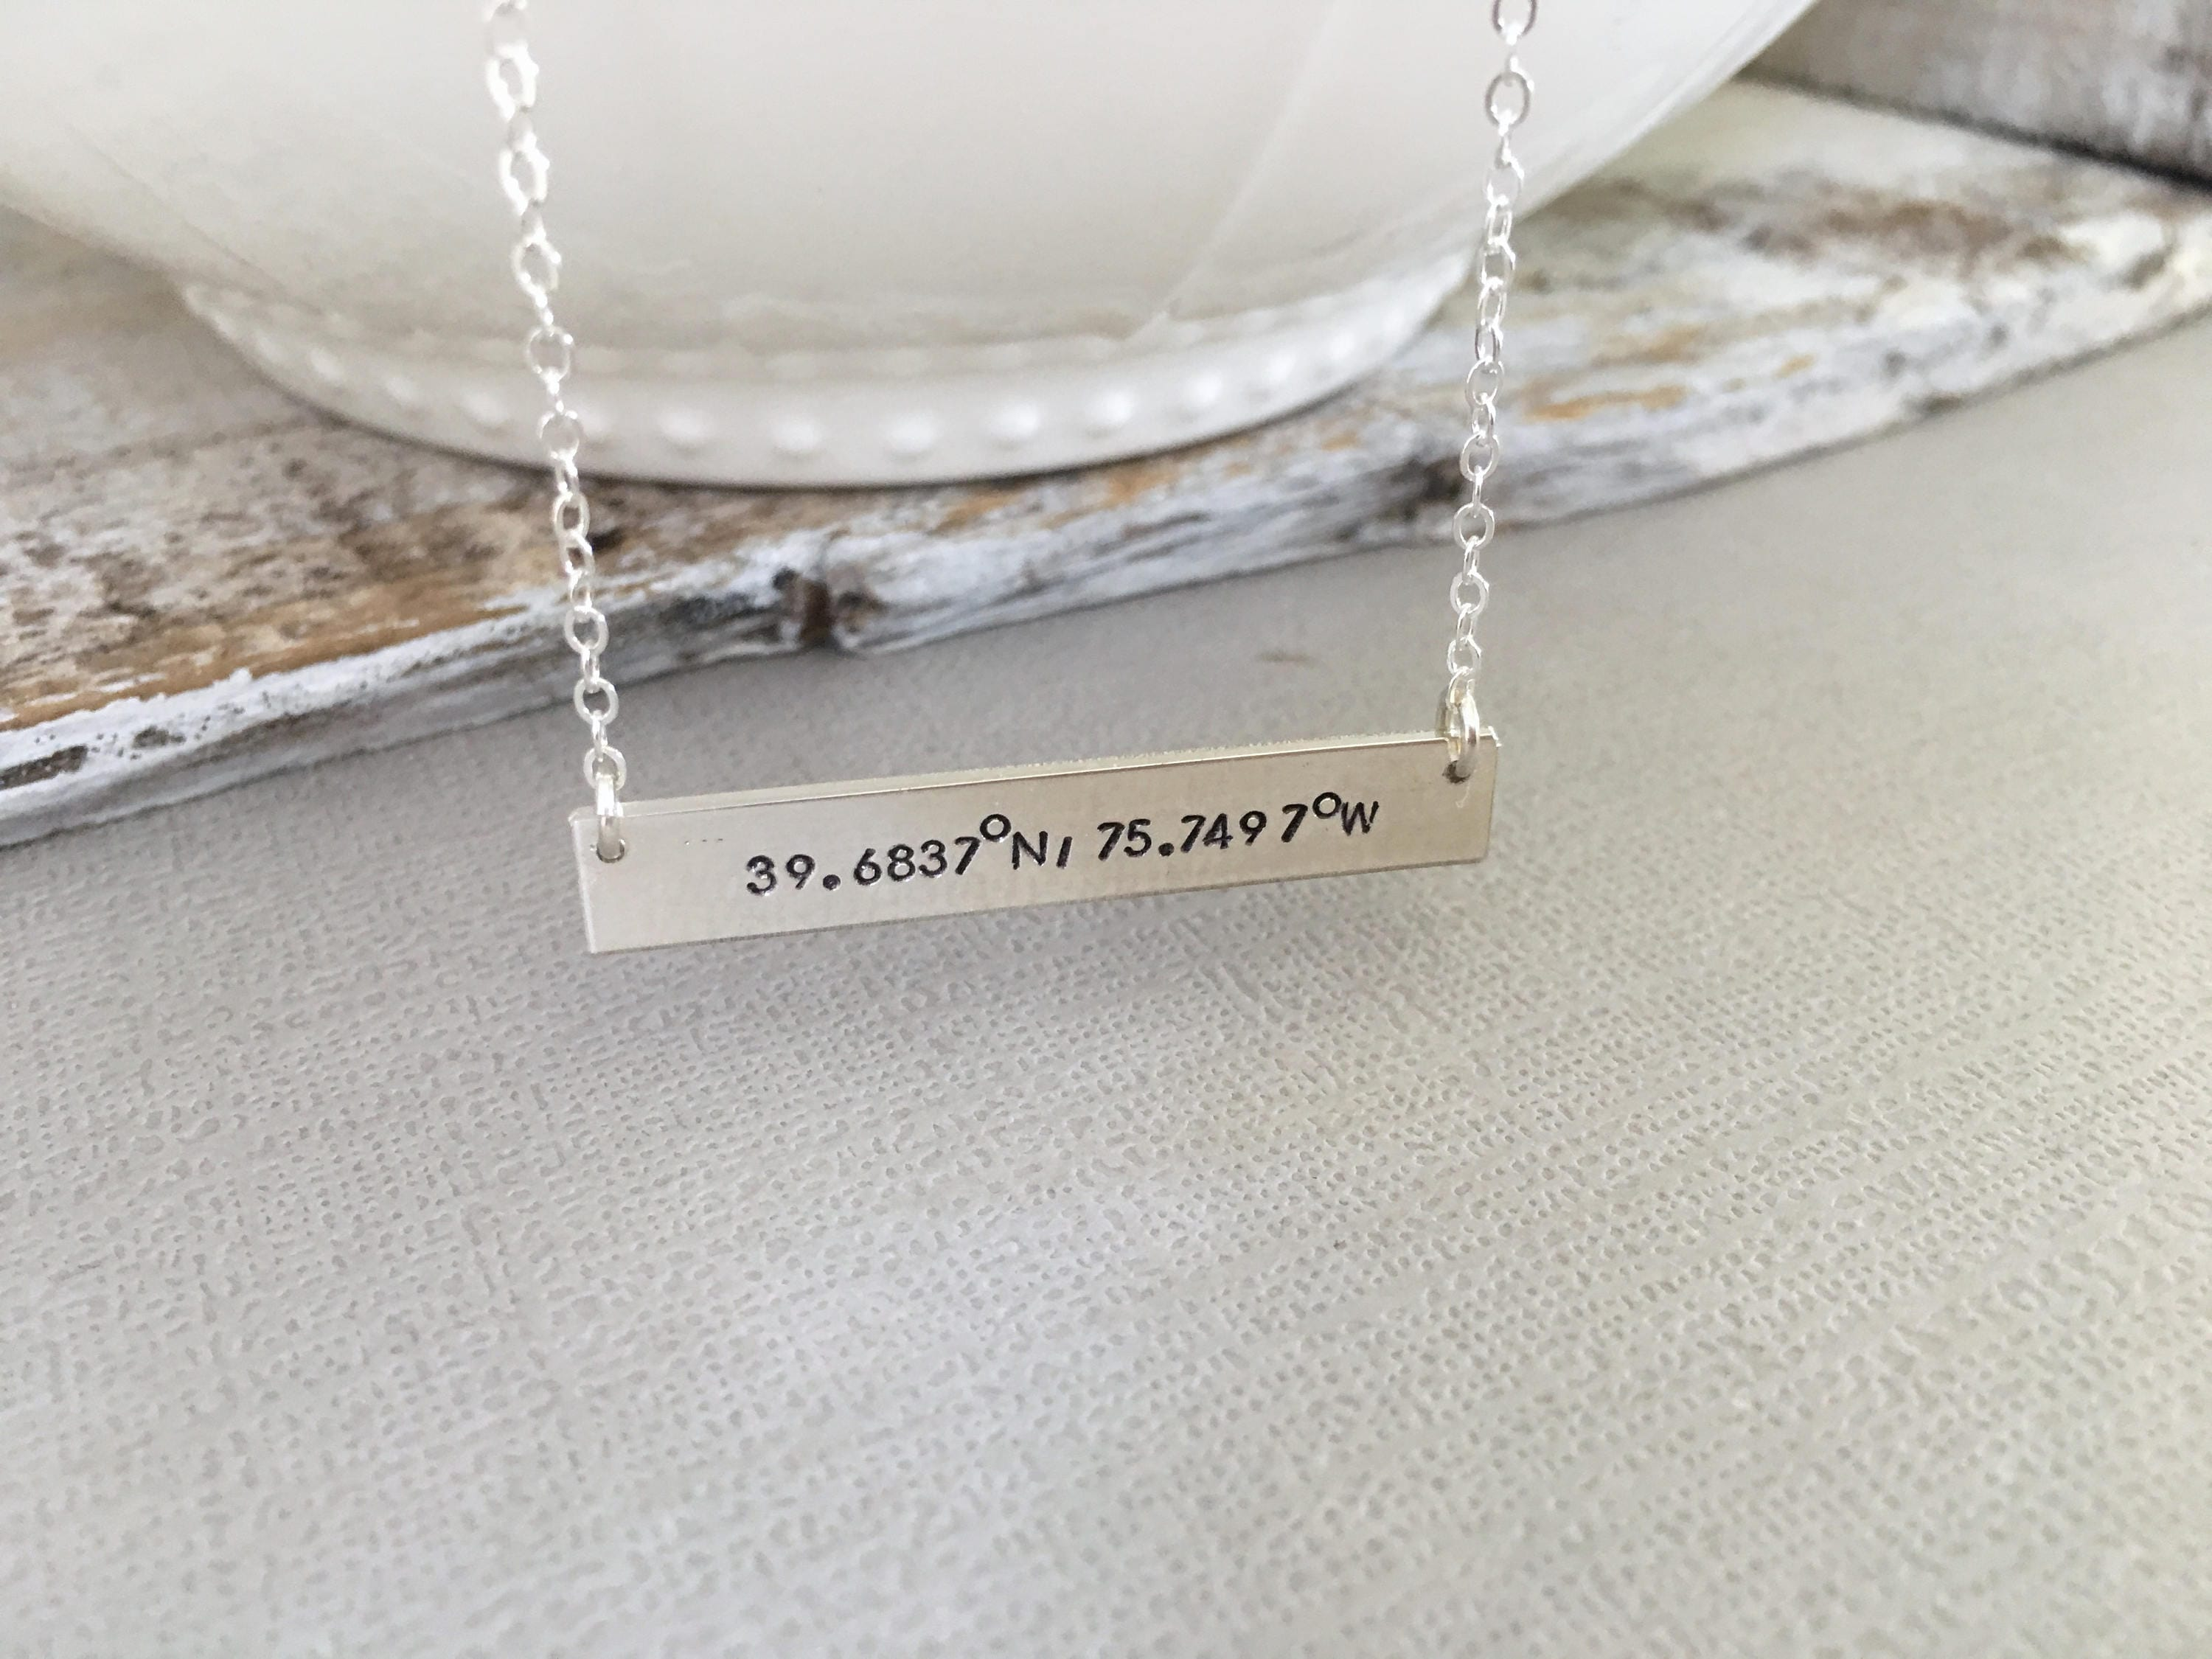 necklaces numine gold necklace monogram coordinate il stamped name jewelry characters c silver handmade fullxfull